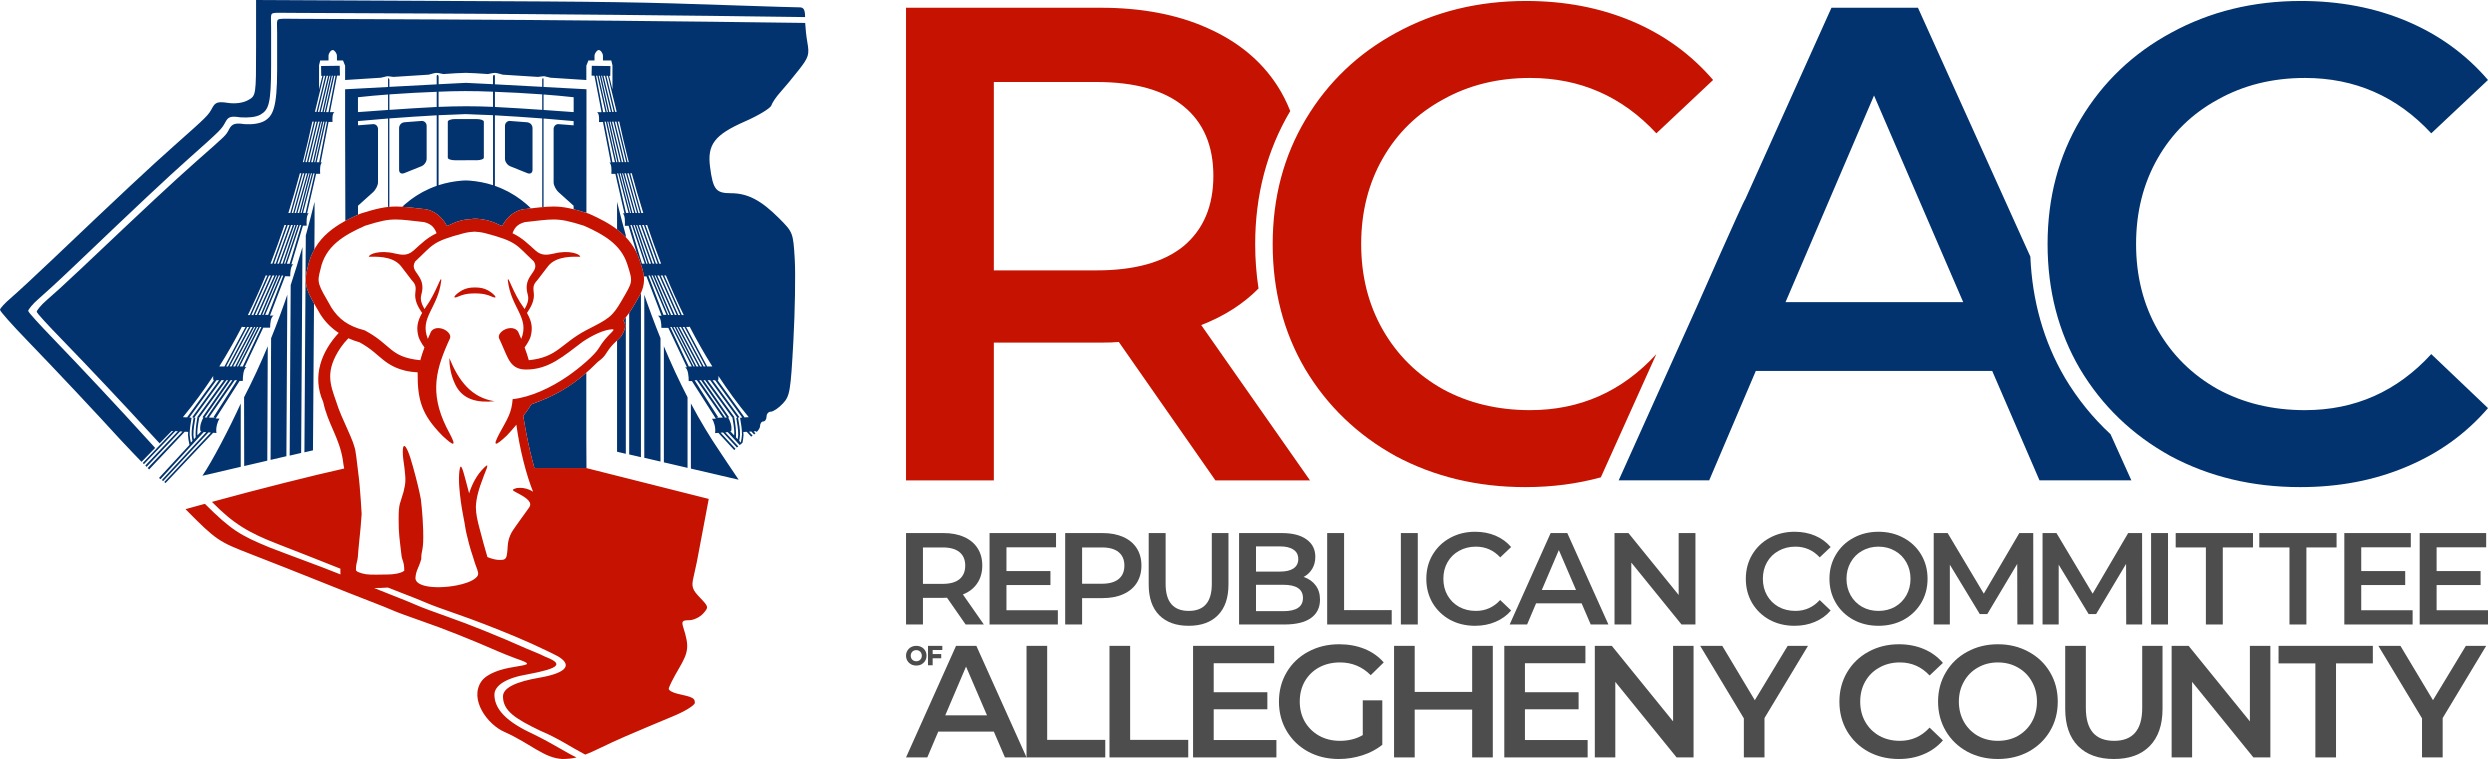 The Republican Committee of Allegheny County